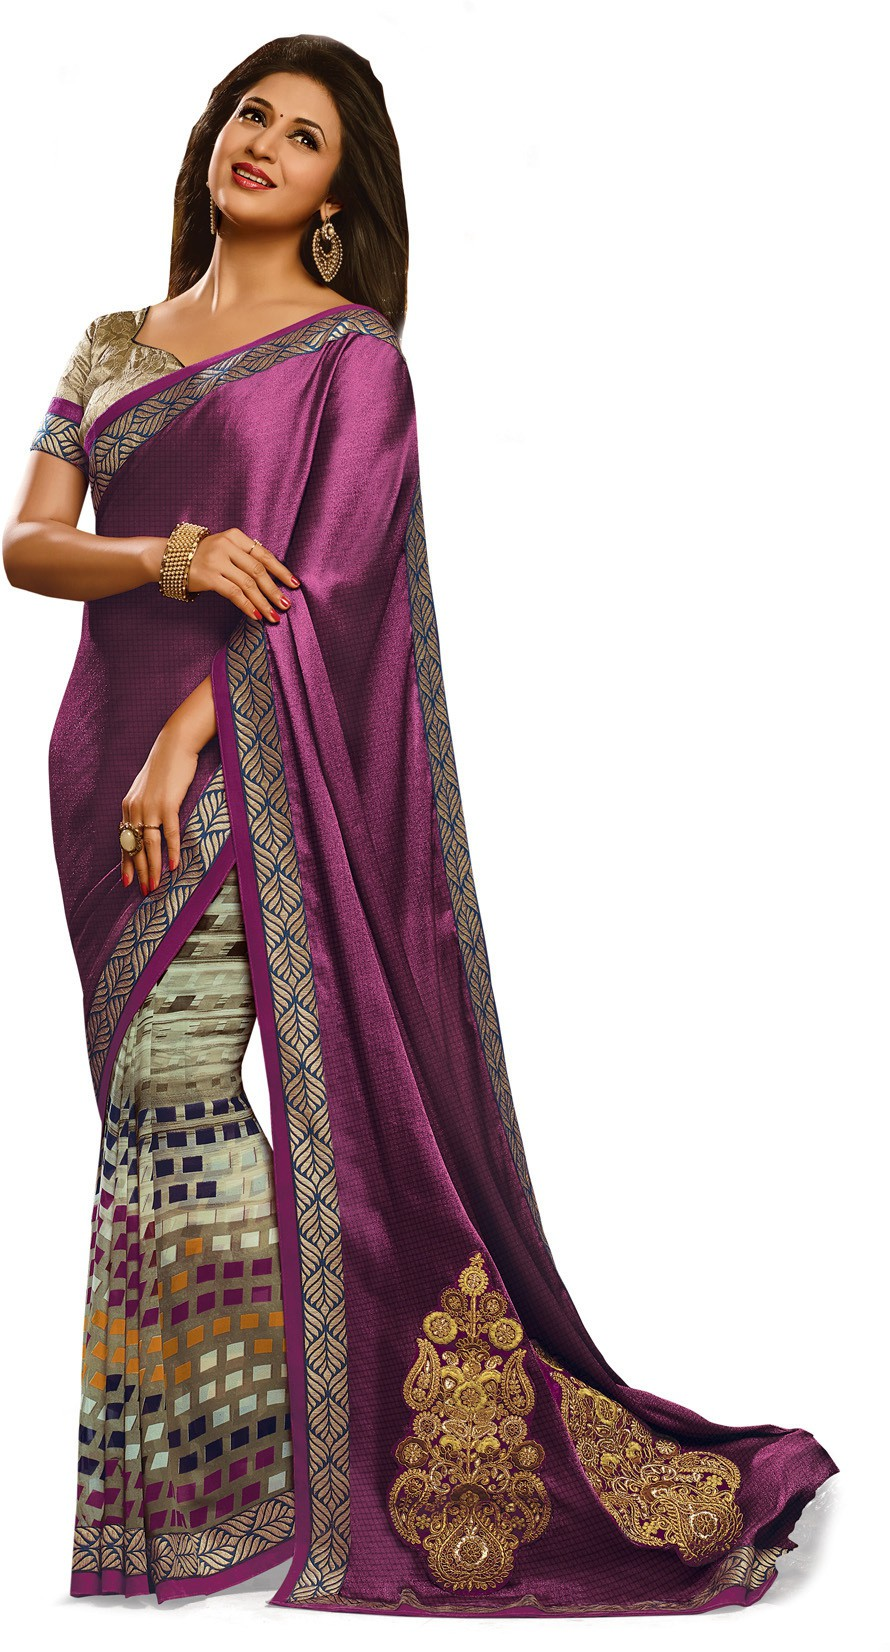 Indianbeauty Self Design, Printed, Embroidered Bollywood Satin, Chiffon Saree(Blue, Grey)